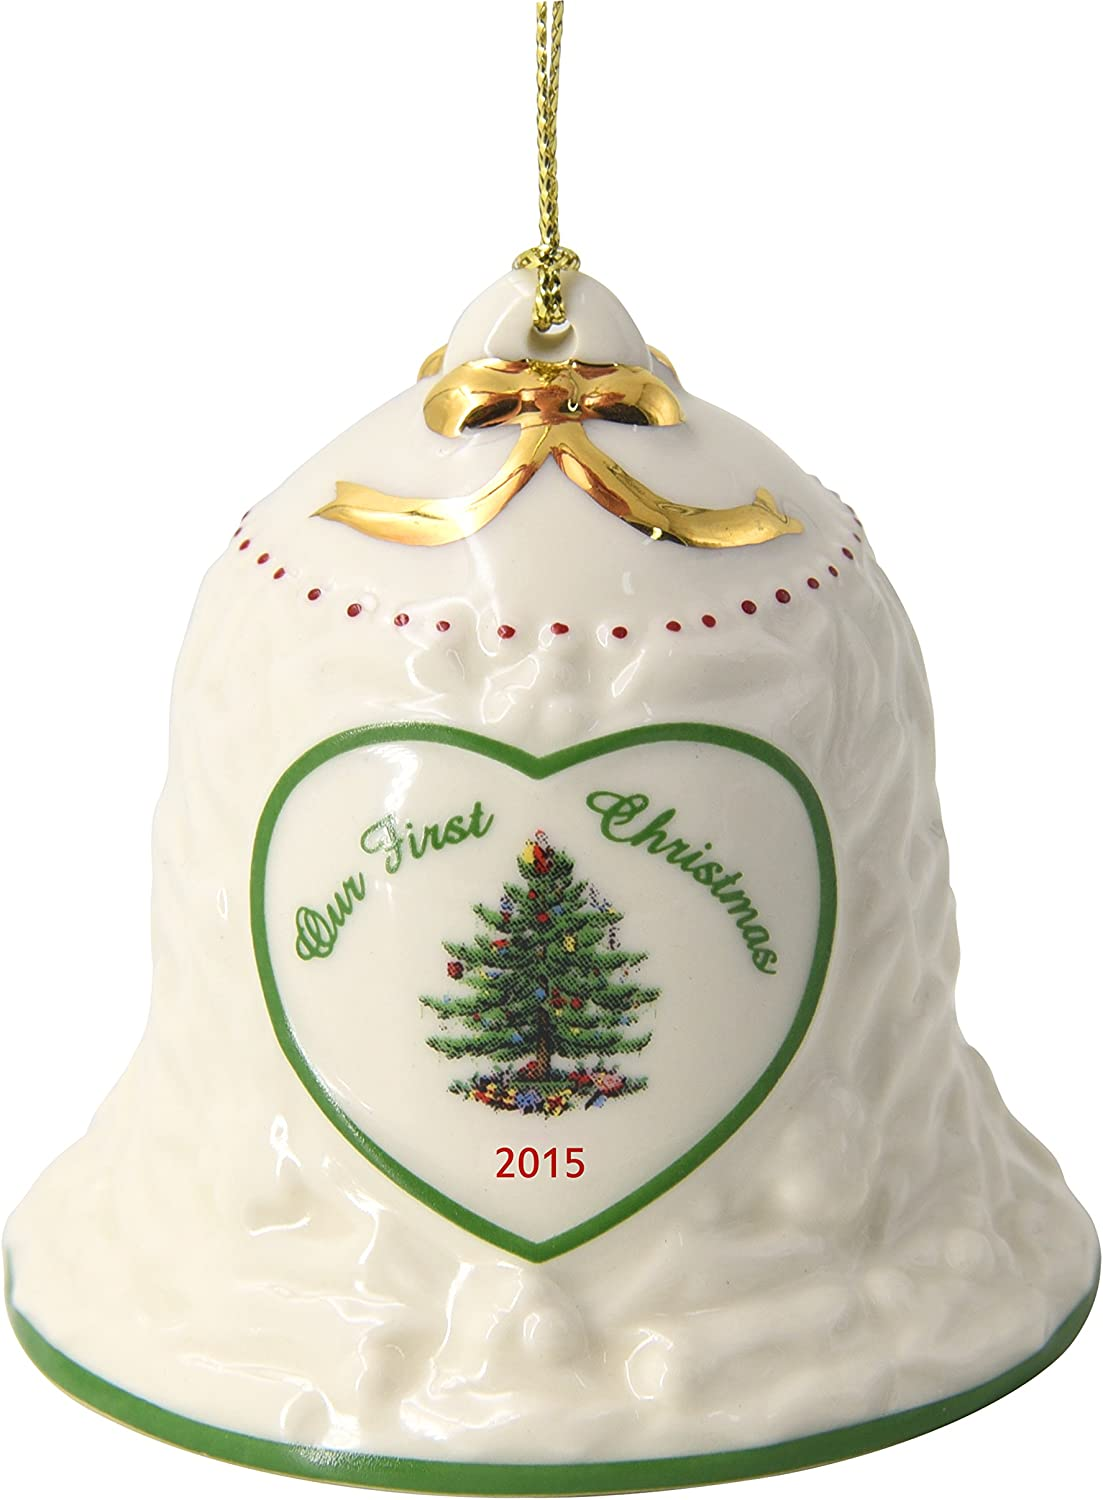 Spode Our First Christmas Bell Annual safety Tree Sale special price 2015 Ornament